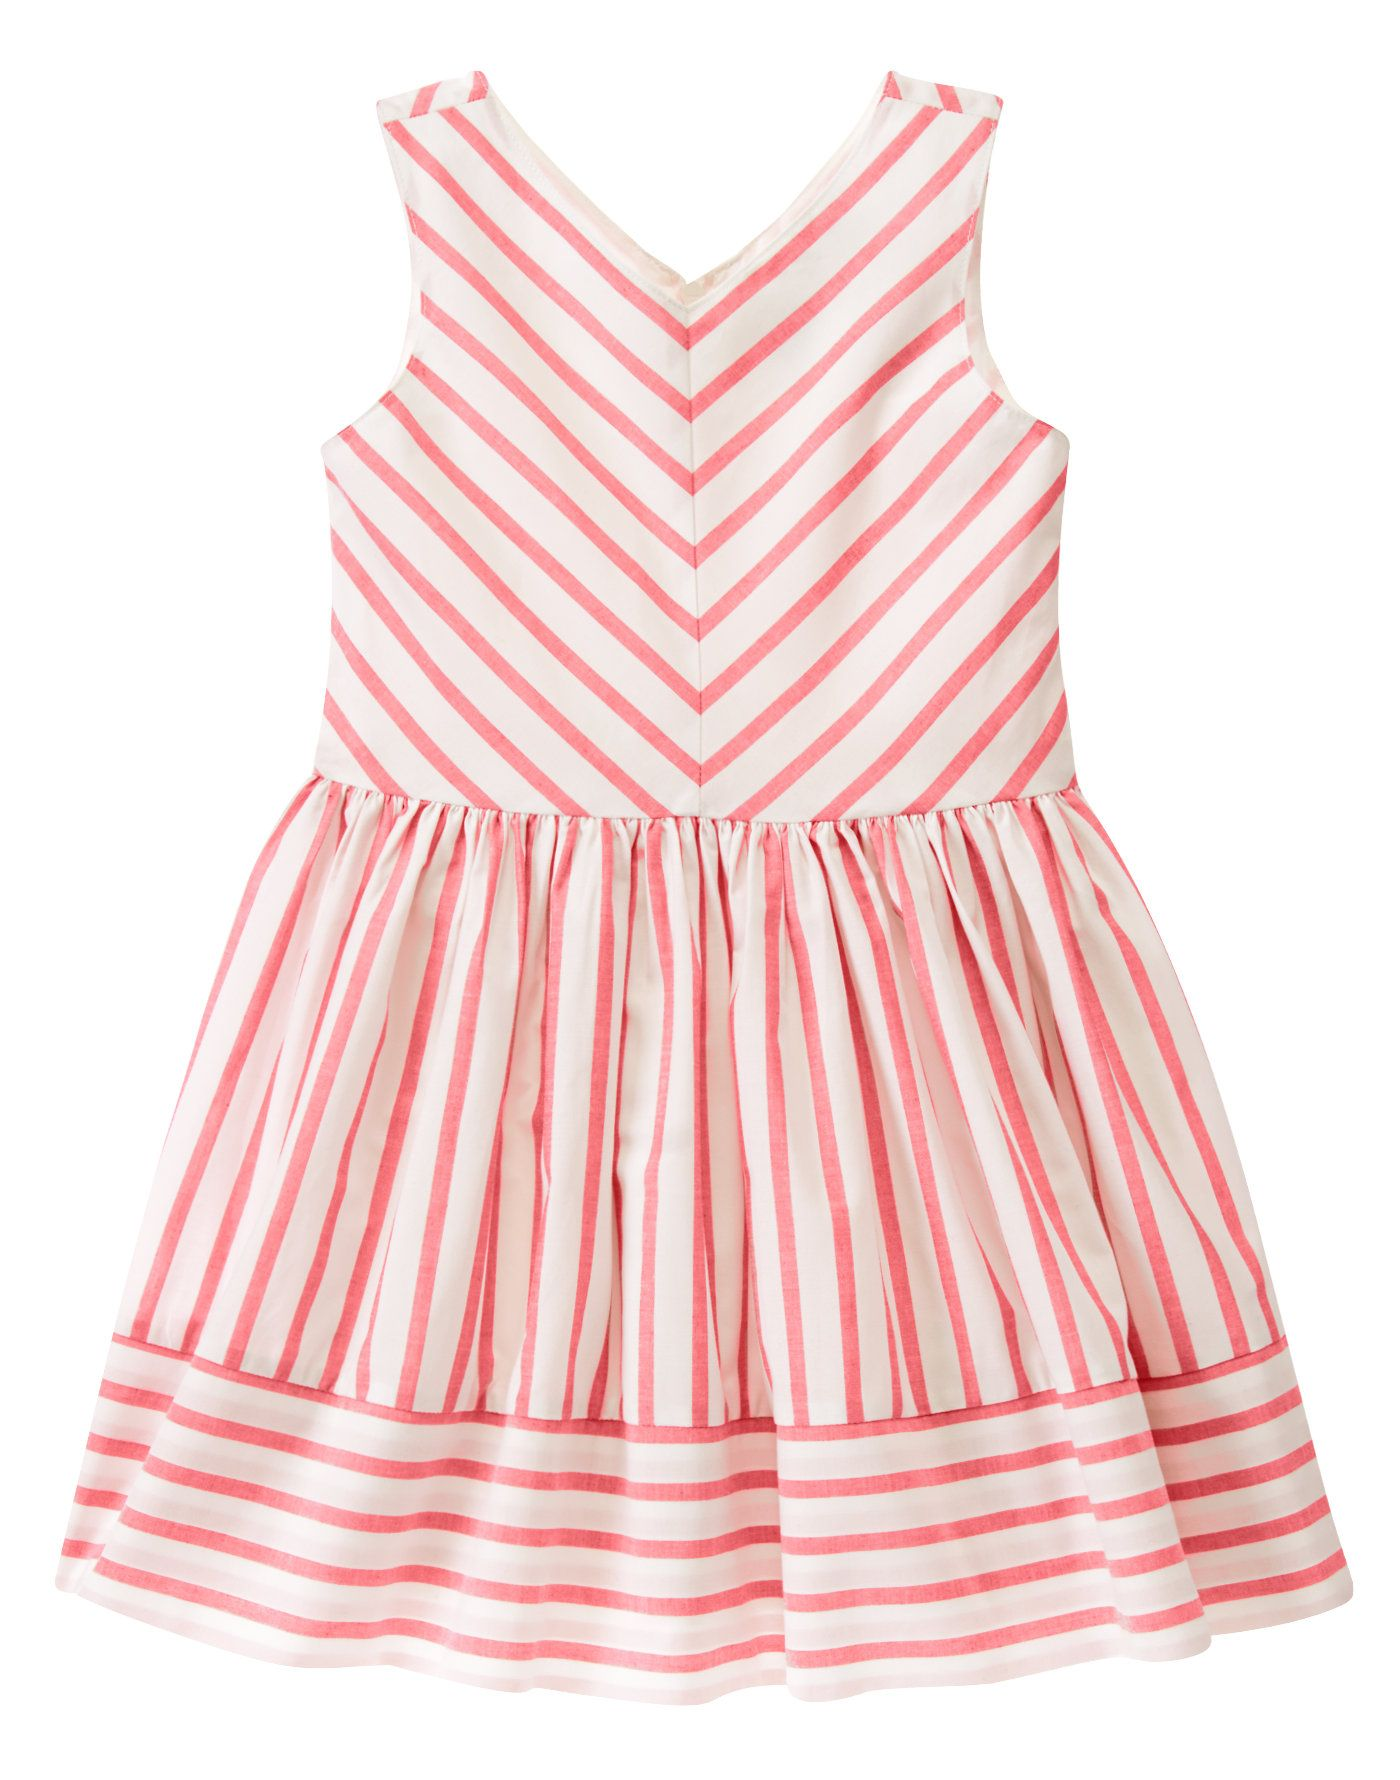 f884bcd4a119f Striped Dress at Gymboree- Just purchased this for my little princess! Love  the lines and details. So chic!